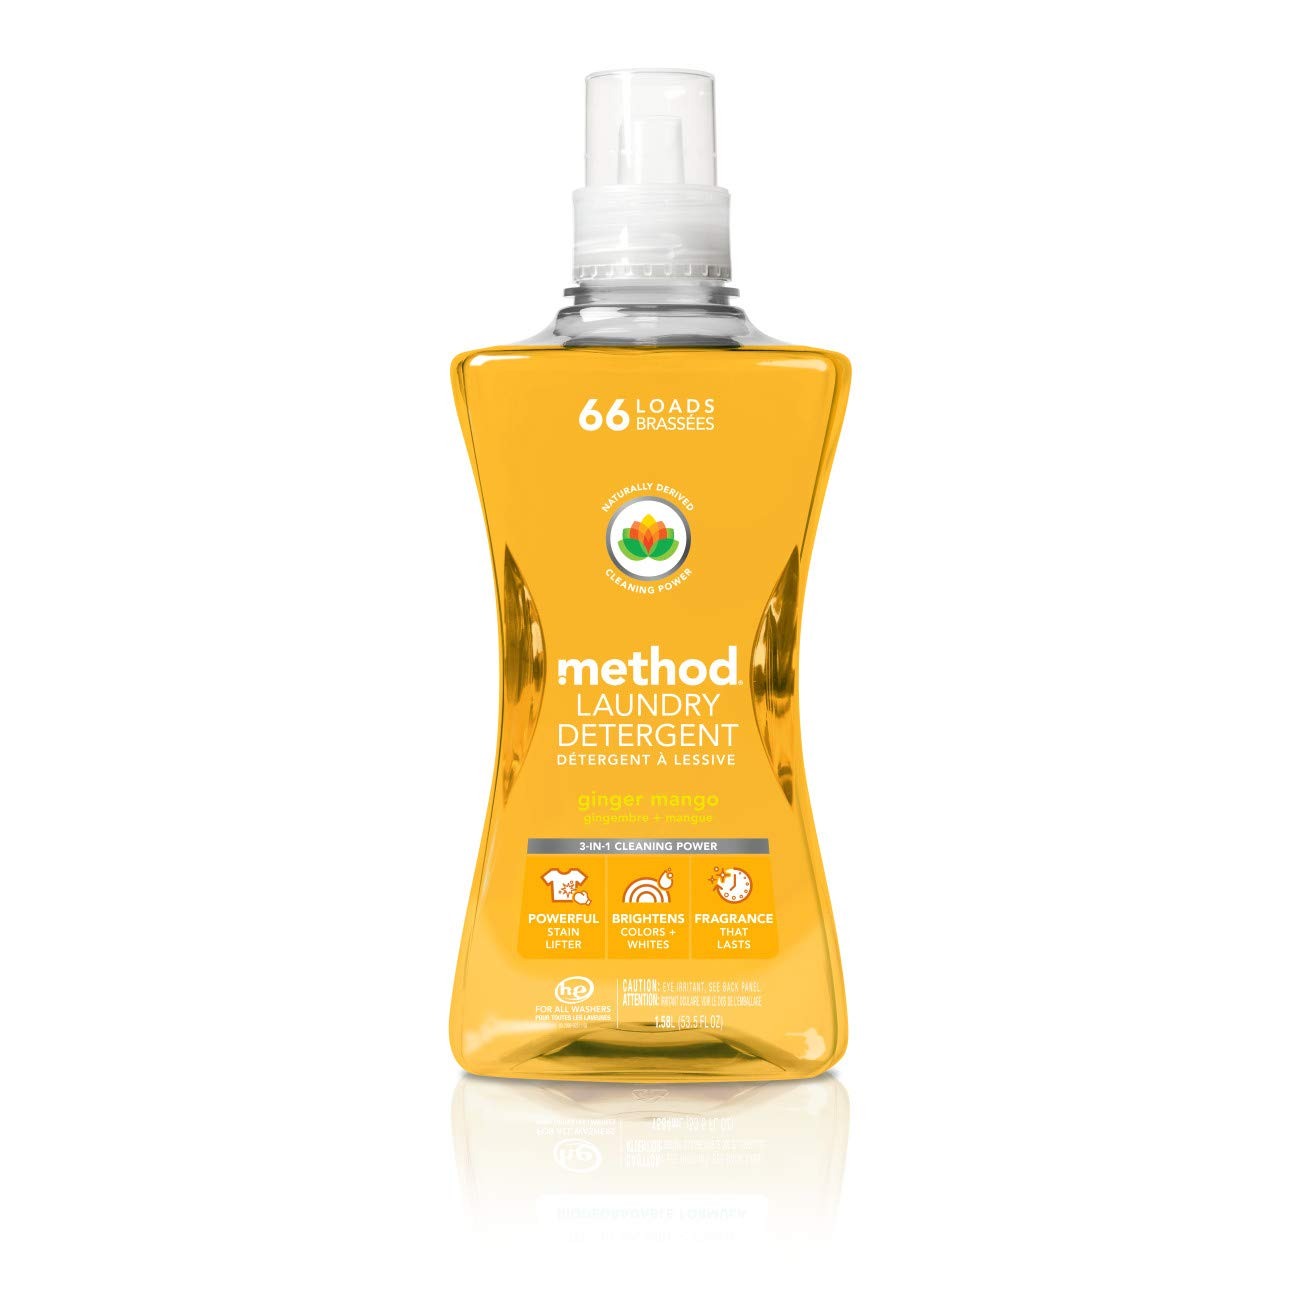 Method Concentrated Laundry Detergent, Ginger Mango, 53.5 Fluid Ounce, 66 Loads (4 Count)